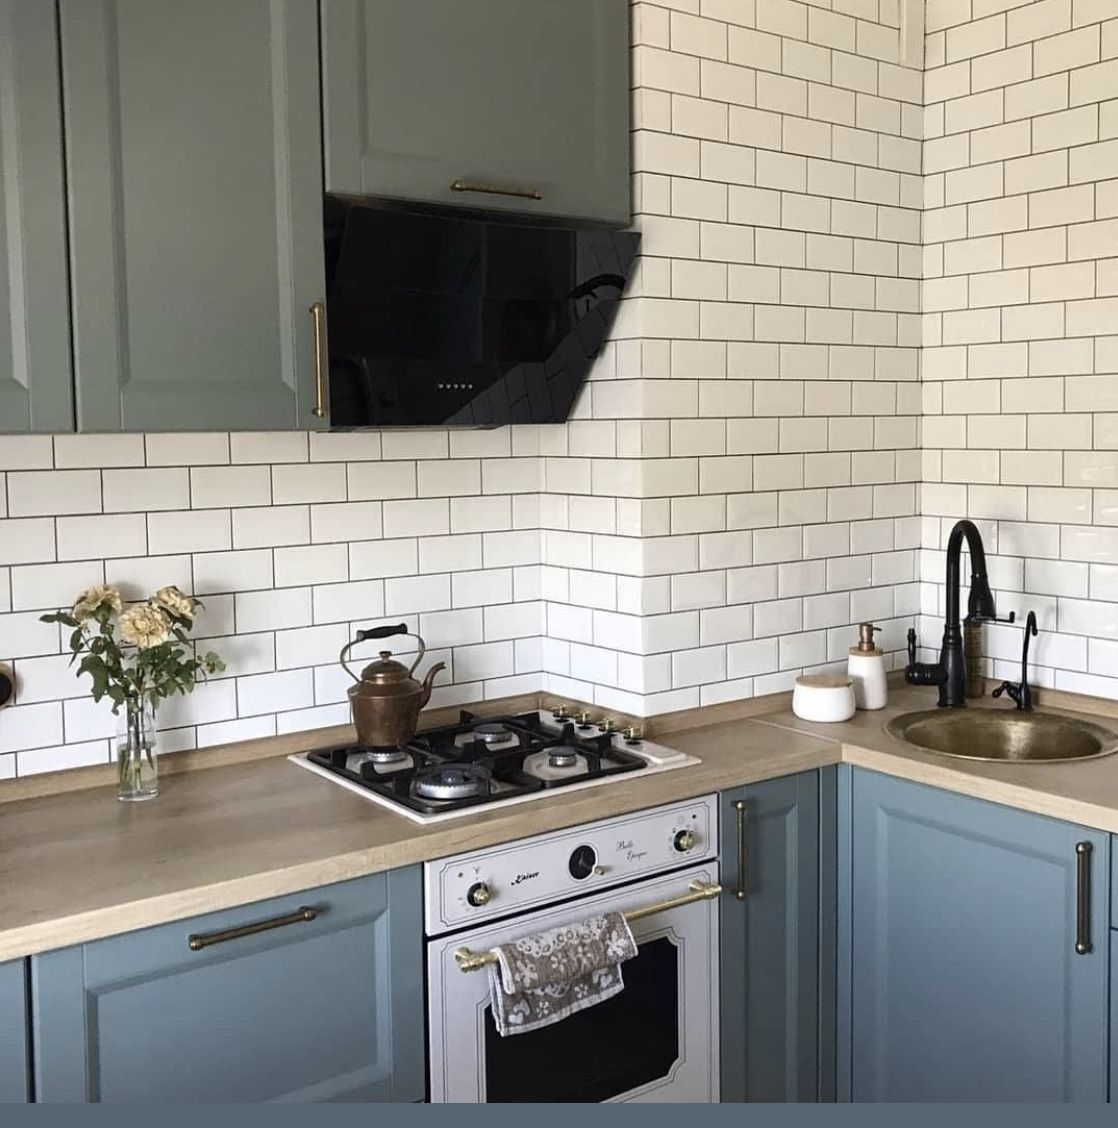 Pin by Ирина Яресько on Идеи для дома in 2020 Kitchen